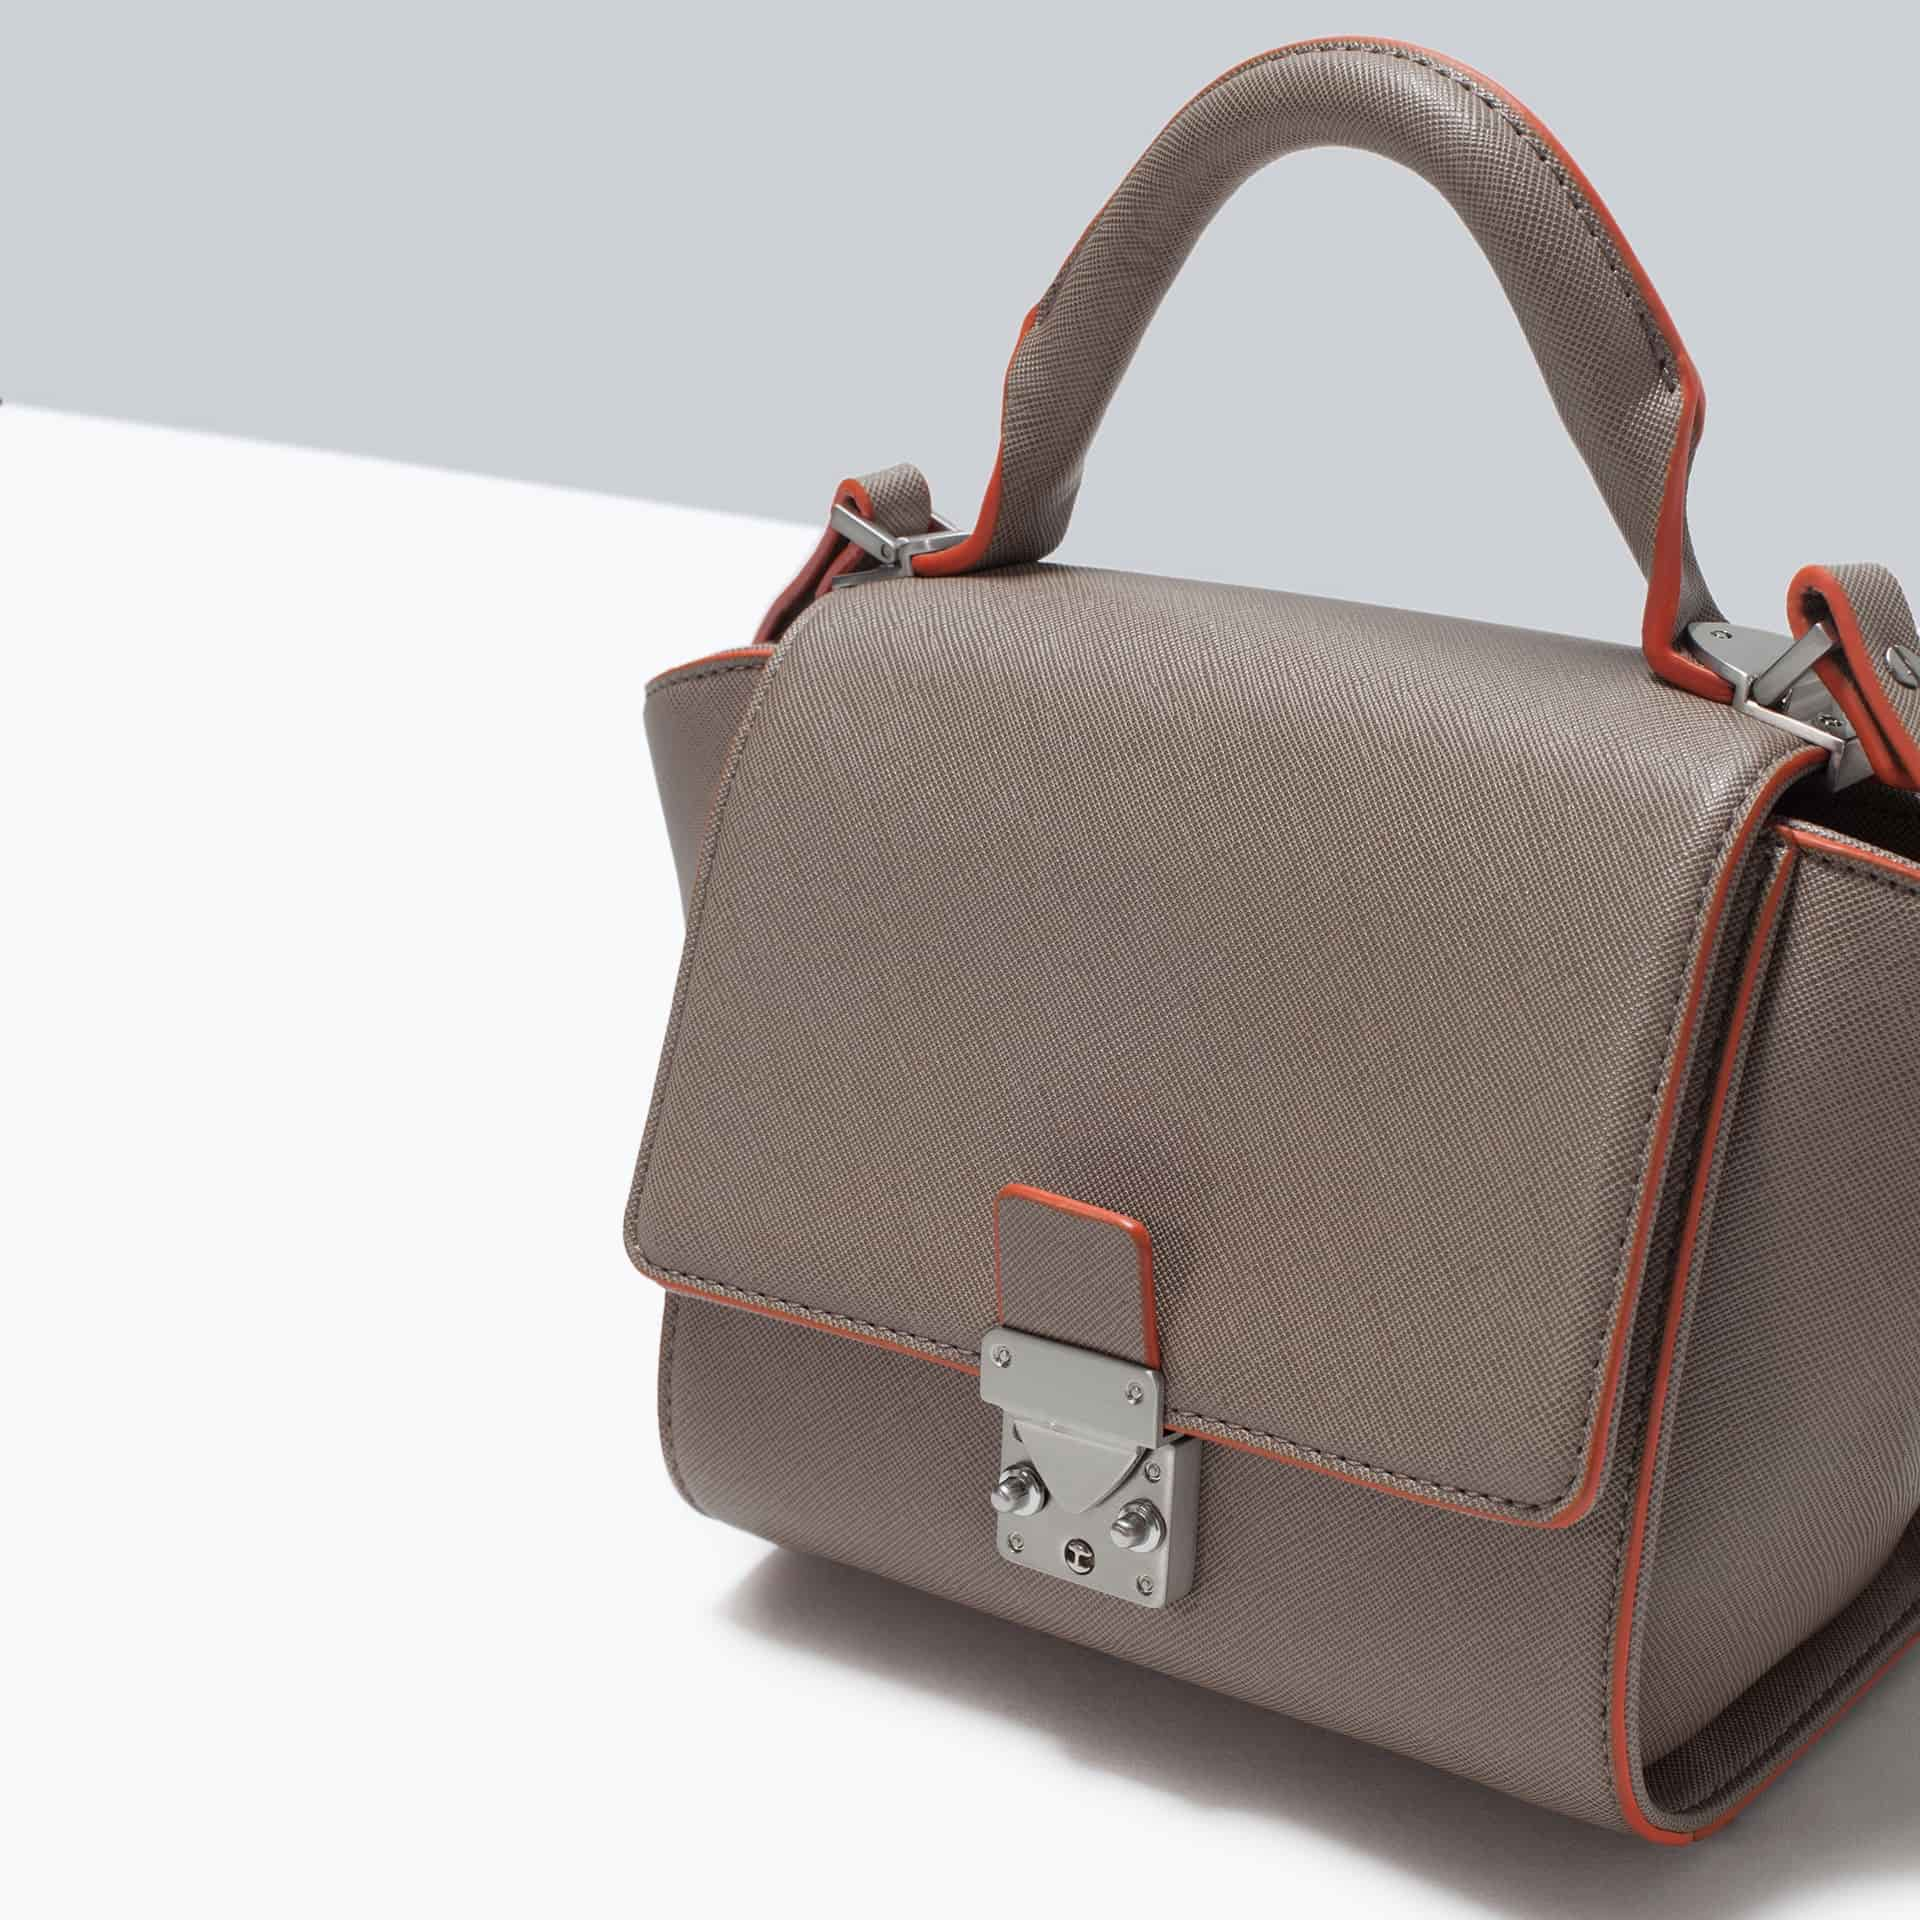 Zara Handbags Online India Confederated Tribes Of The